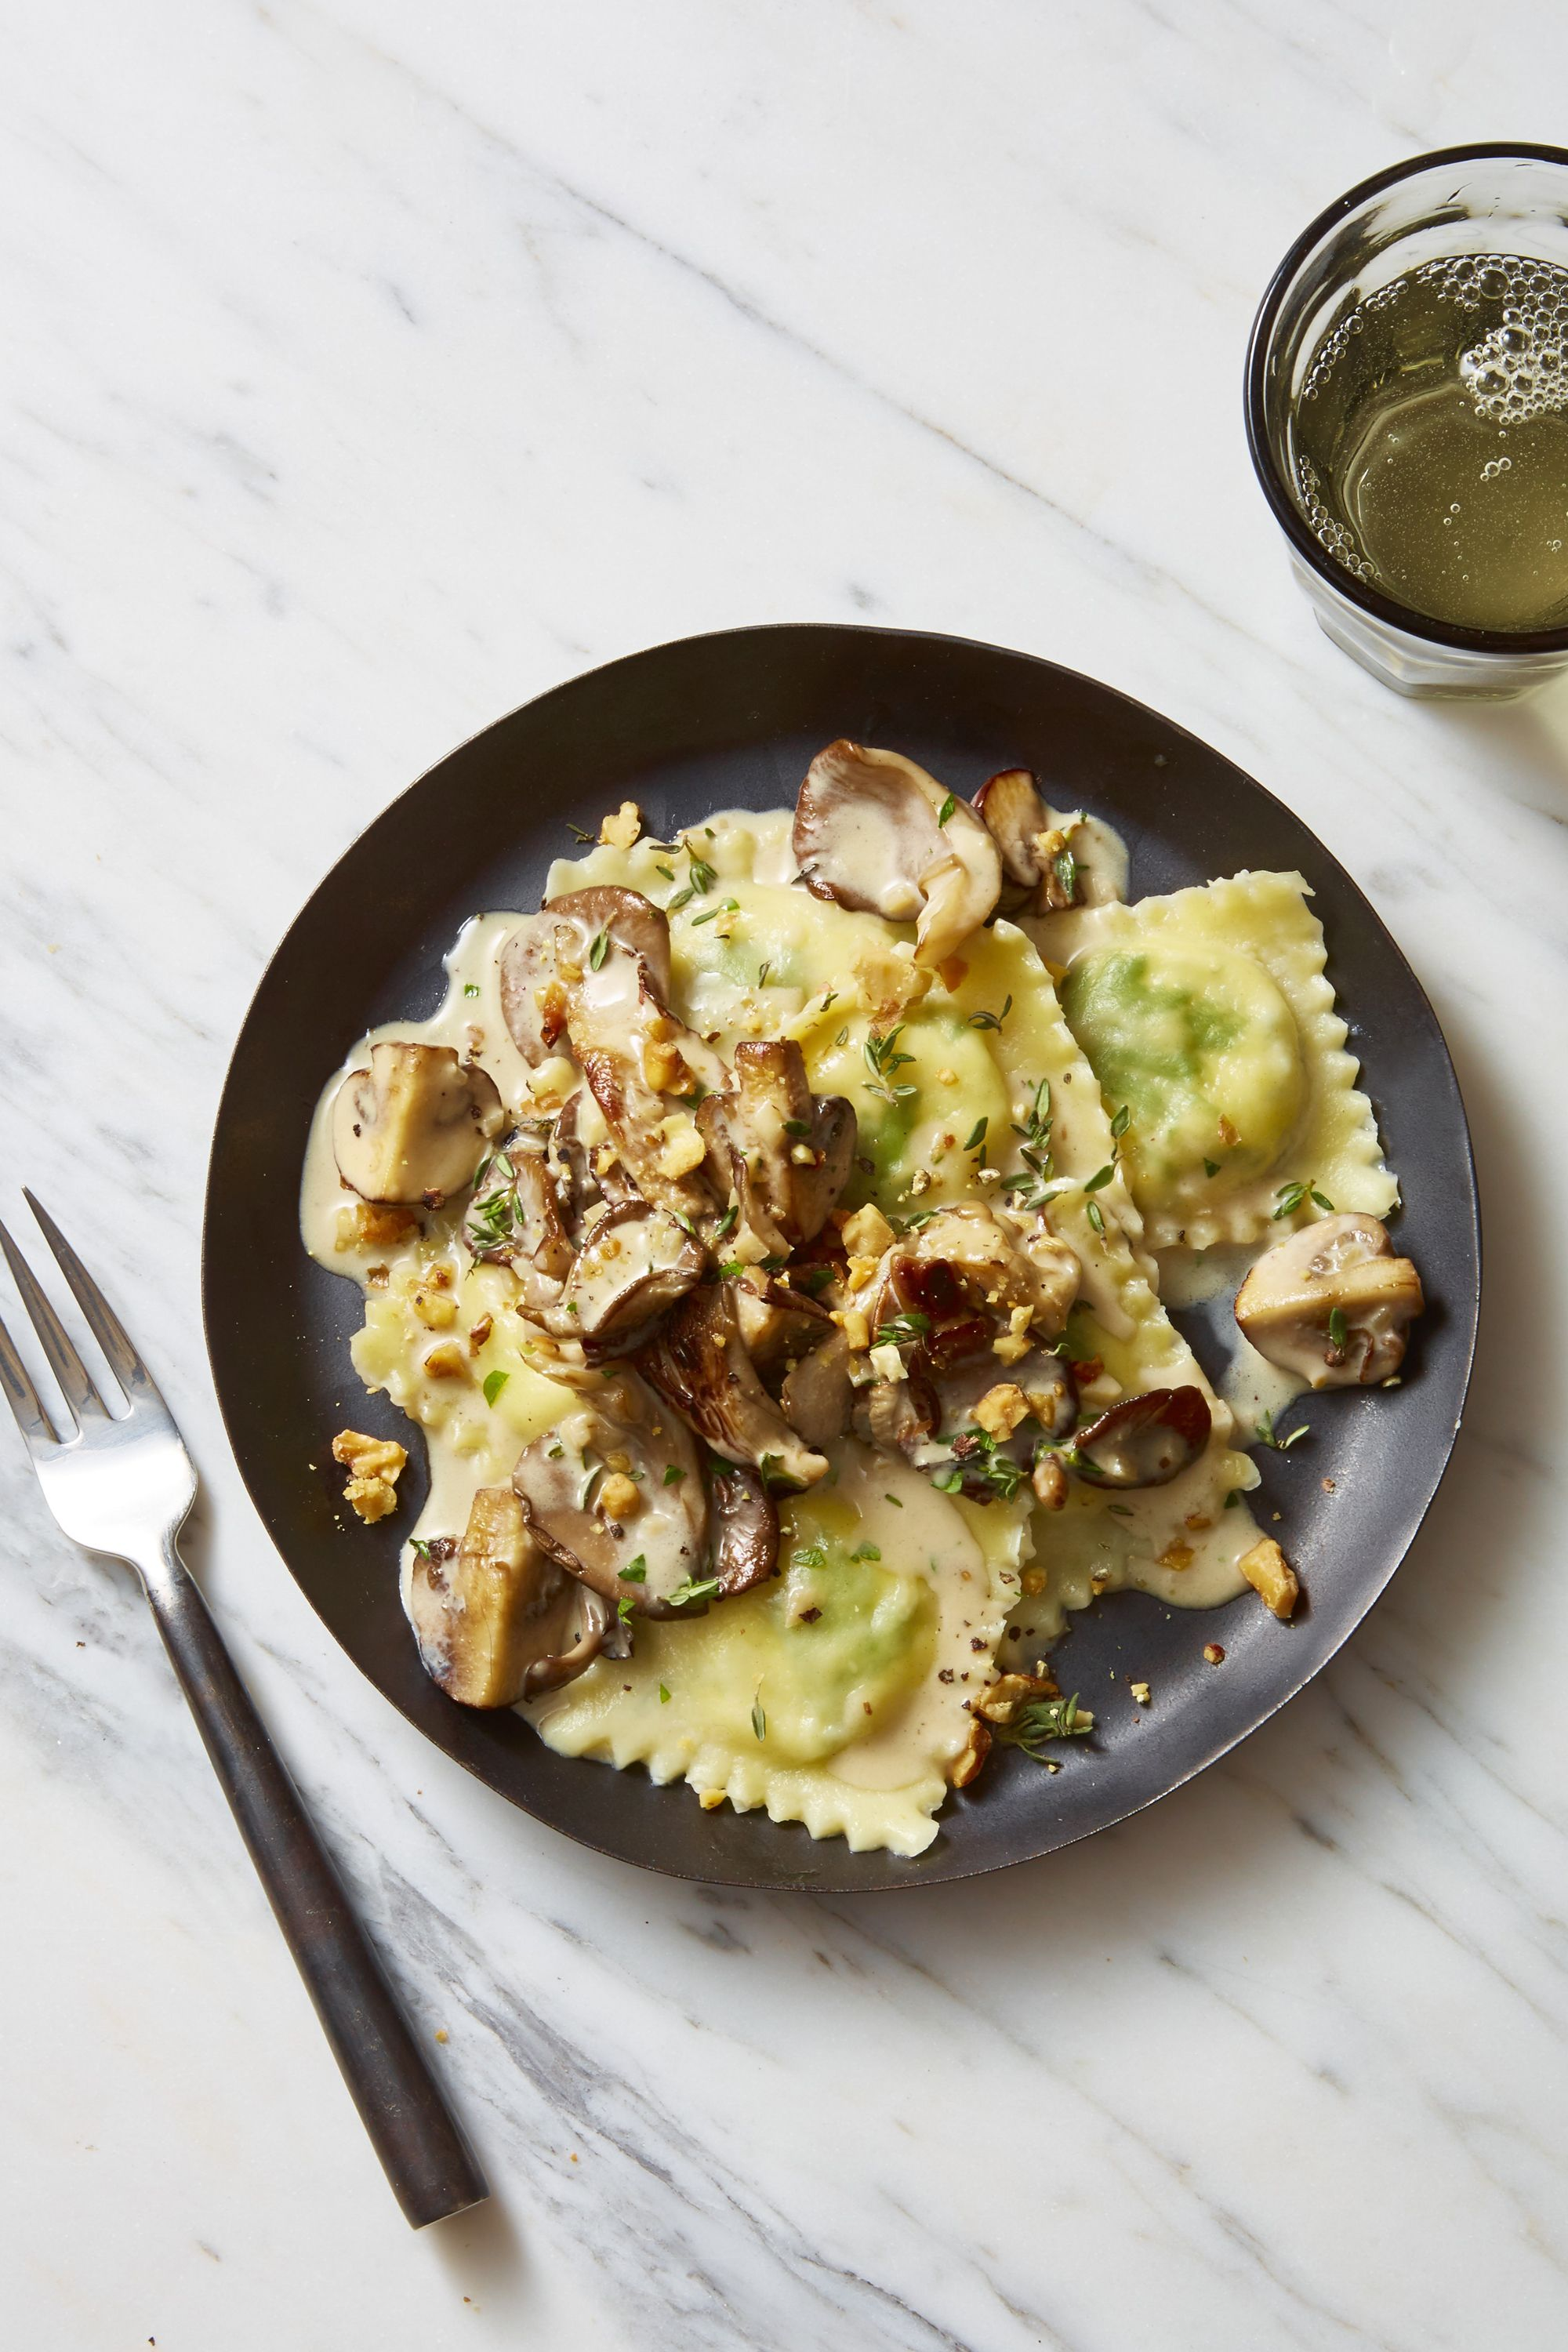 lemon-ricotta ravioli with creamy herbed mushrooms